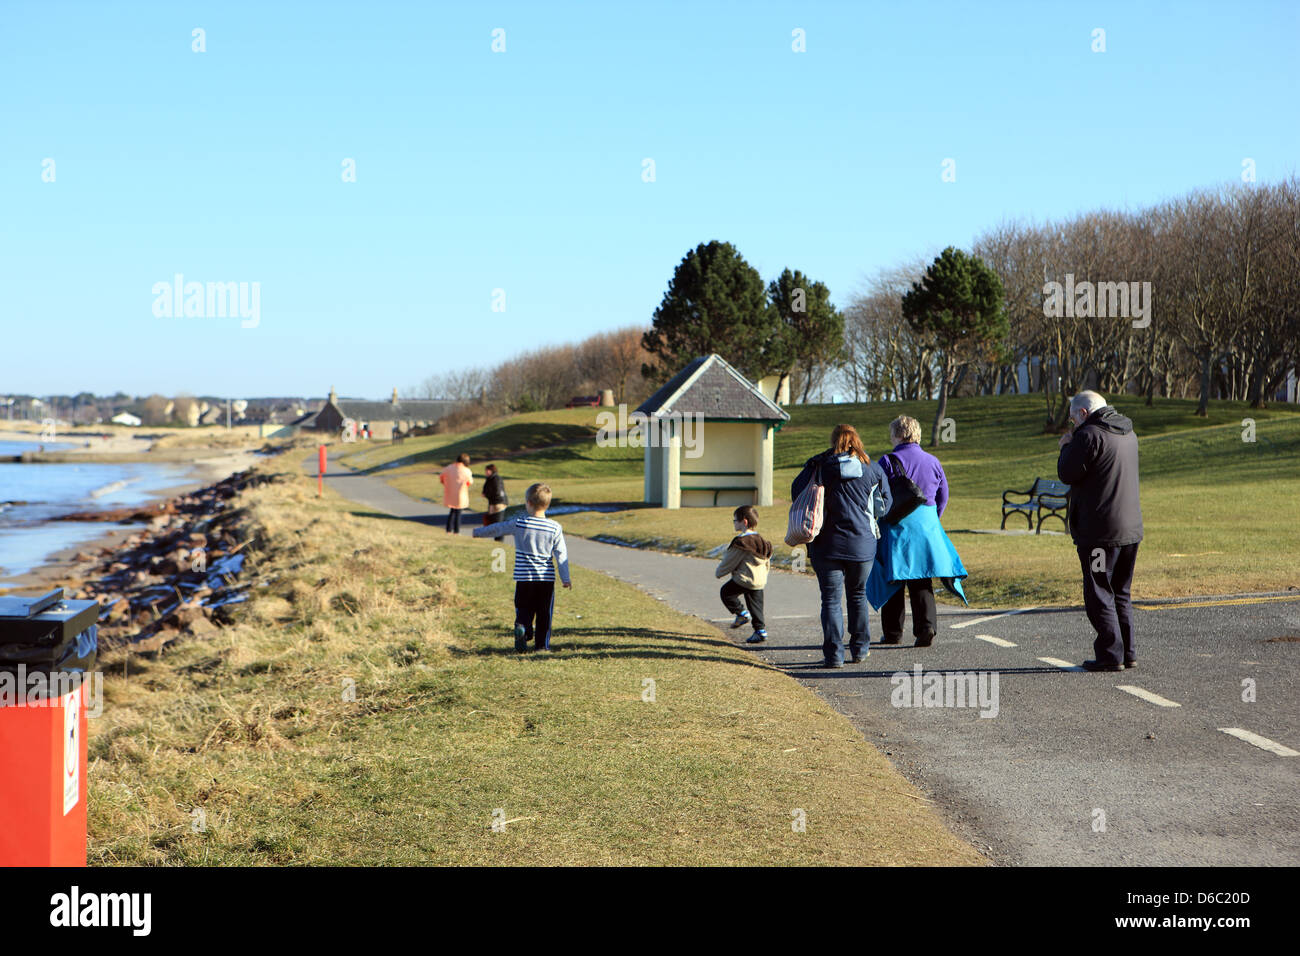 Family walking along the promenade at Nairn in the Highlands of Scotland - Stock Image